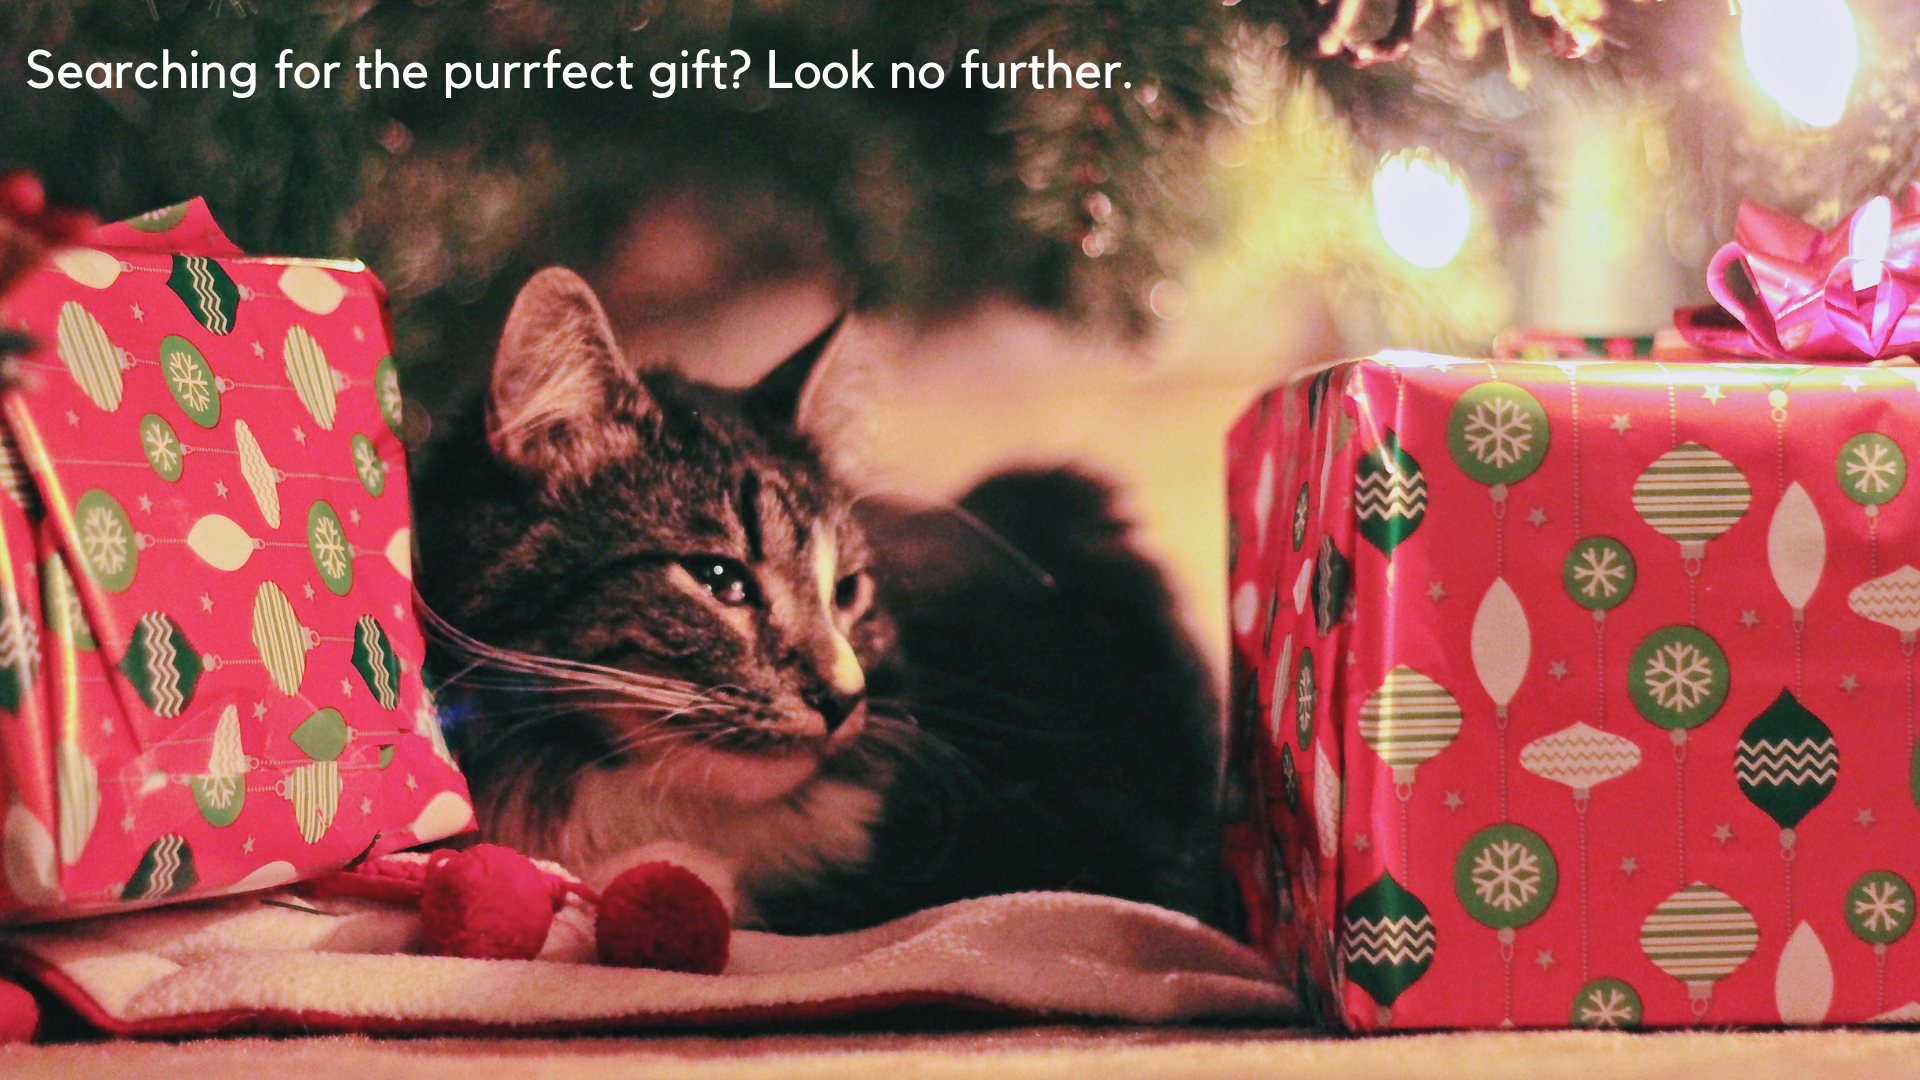 Searching for the purrfect gift? Look no further.